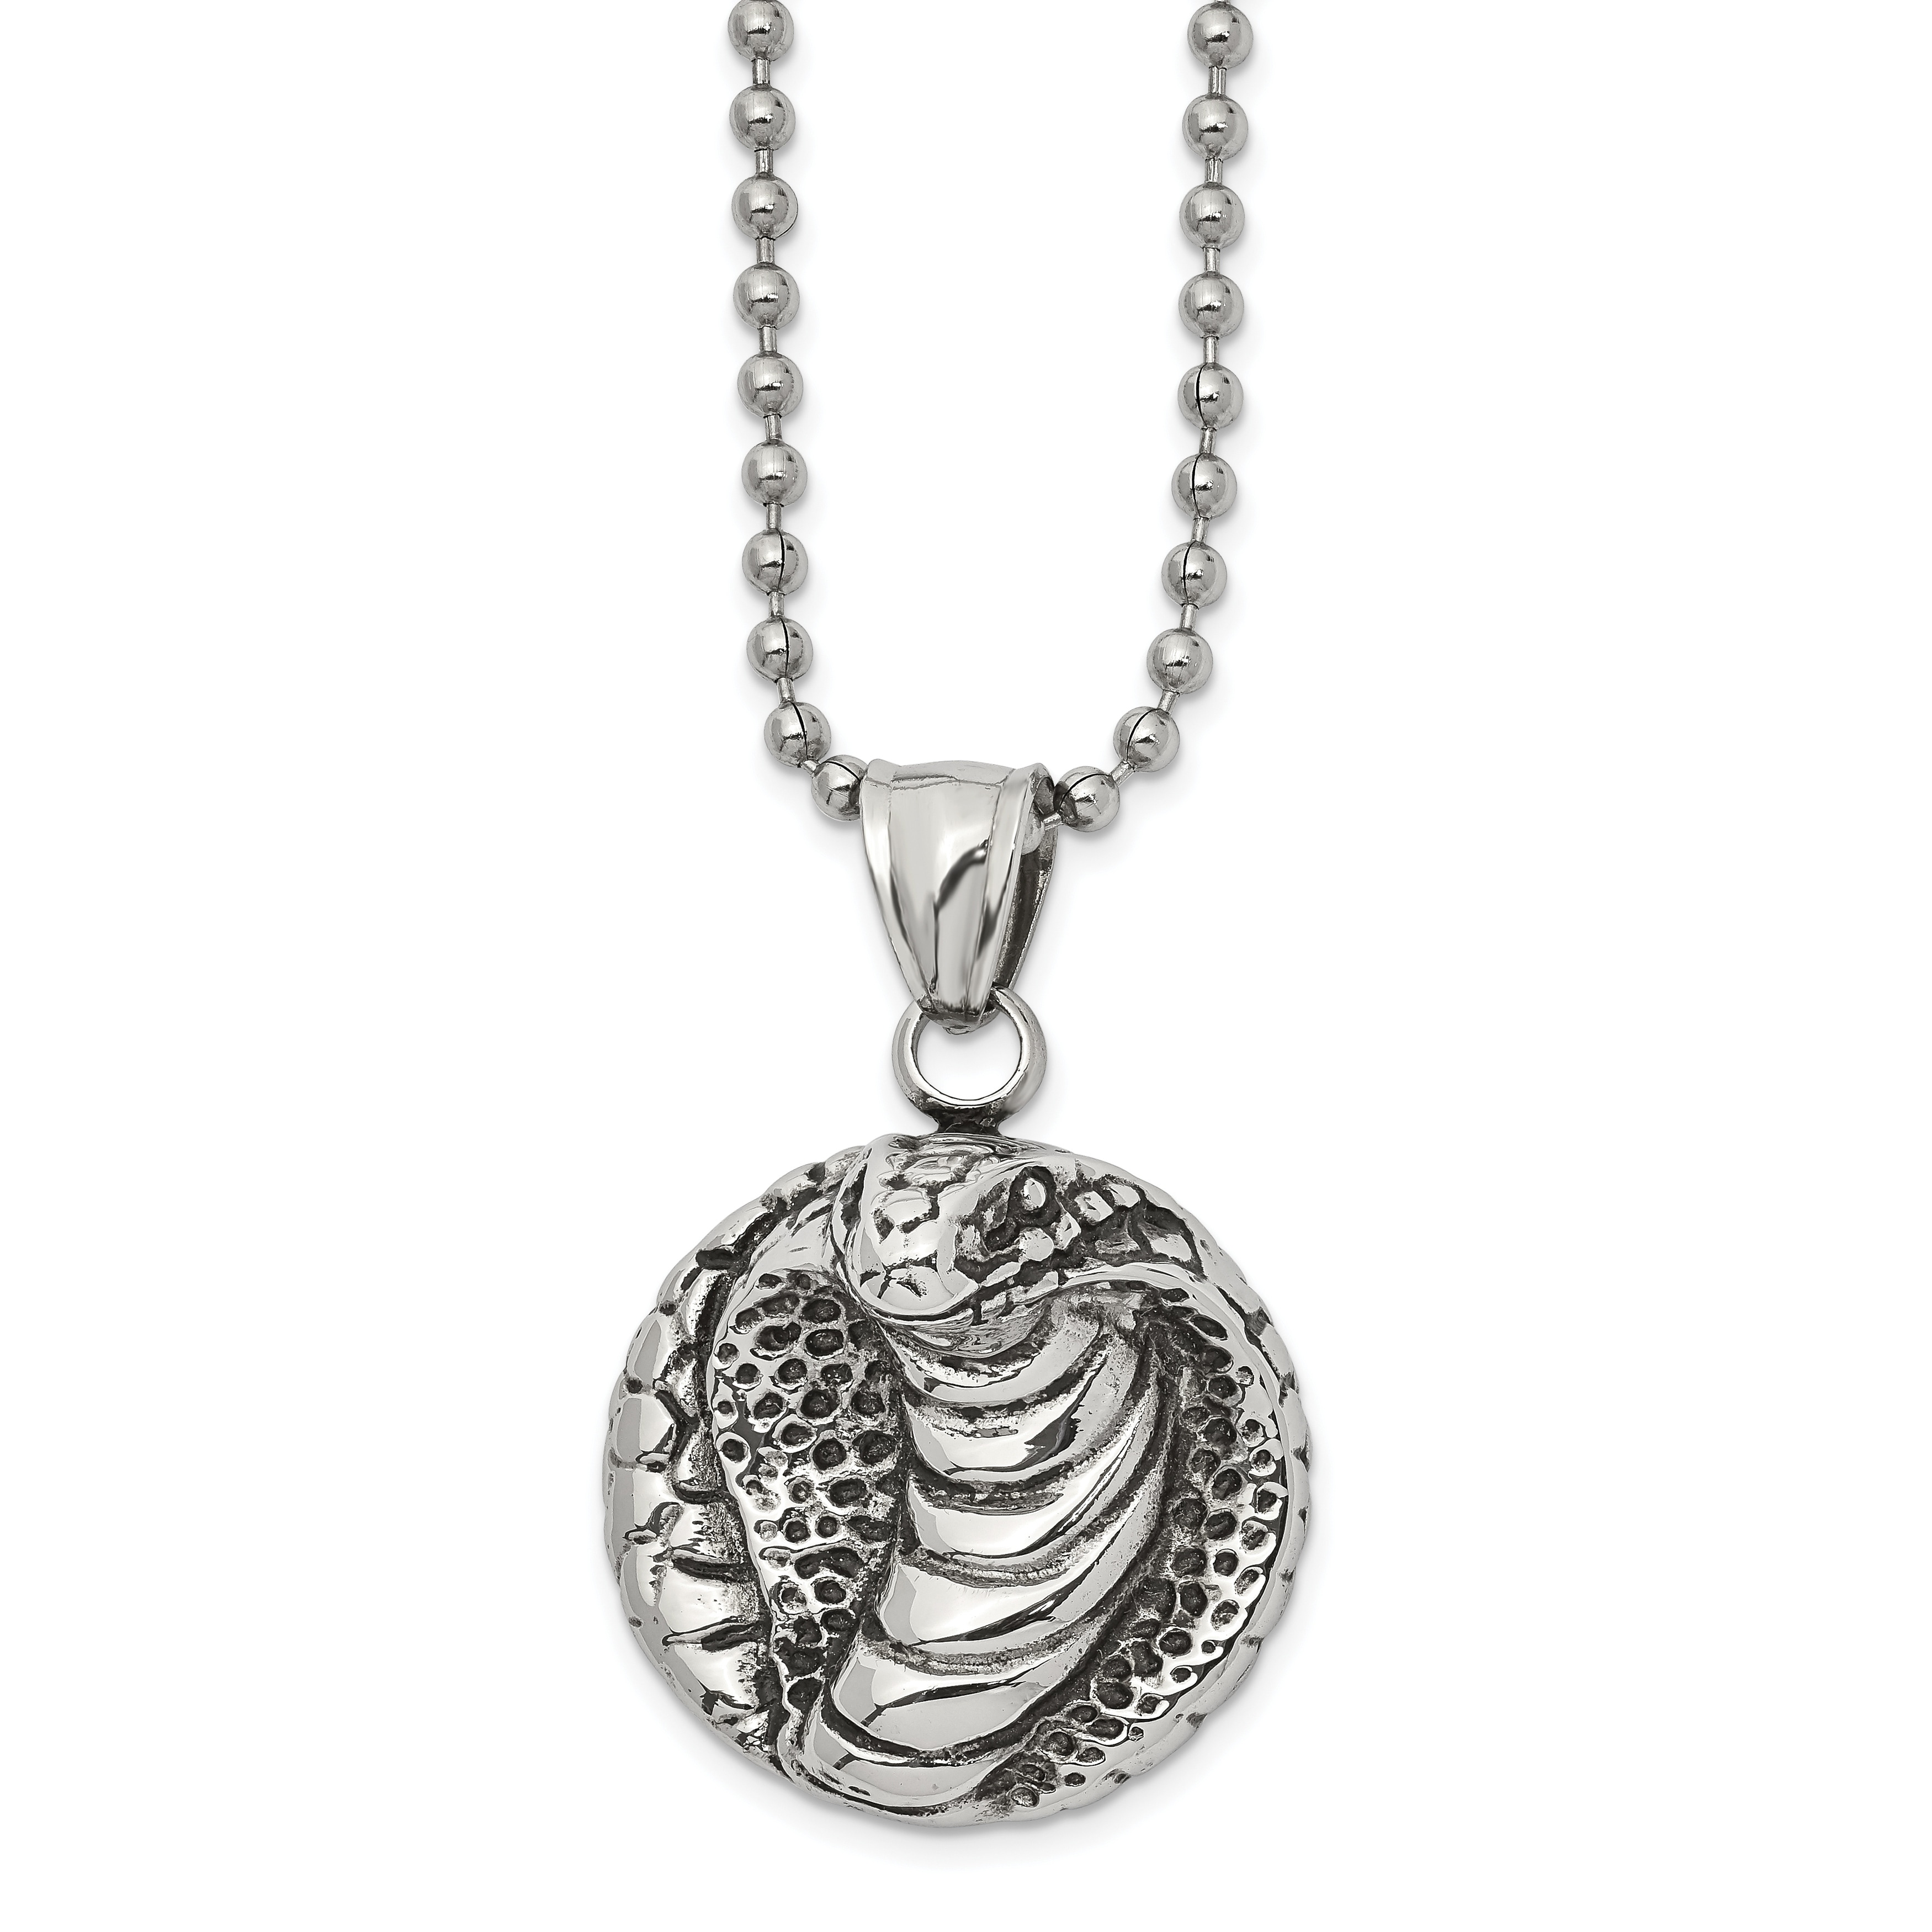 Stainless Steel Antiqued Fancy Claw Pendant Necklace